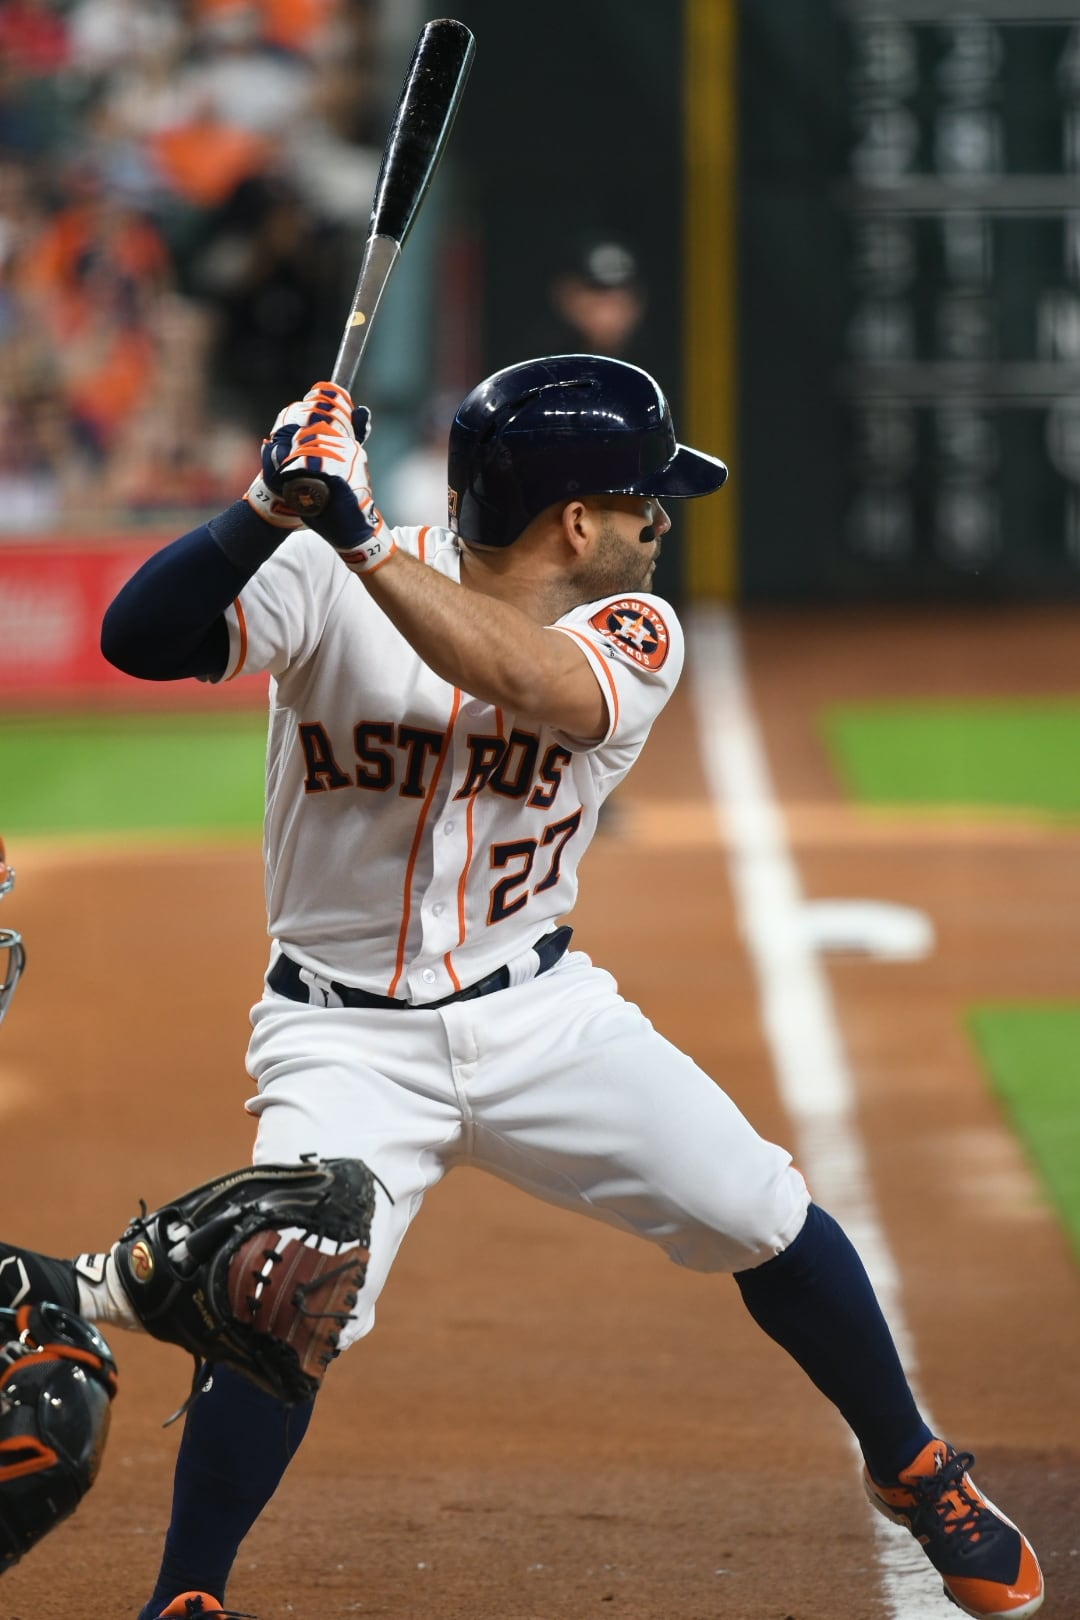 Jose Altuve - about to take a swing